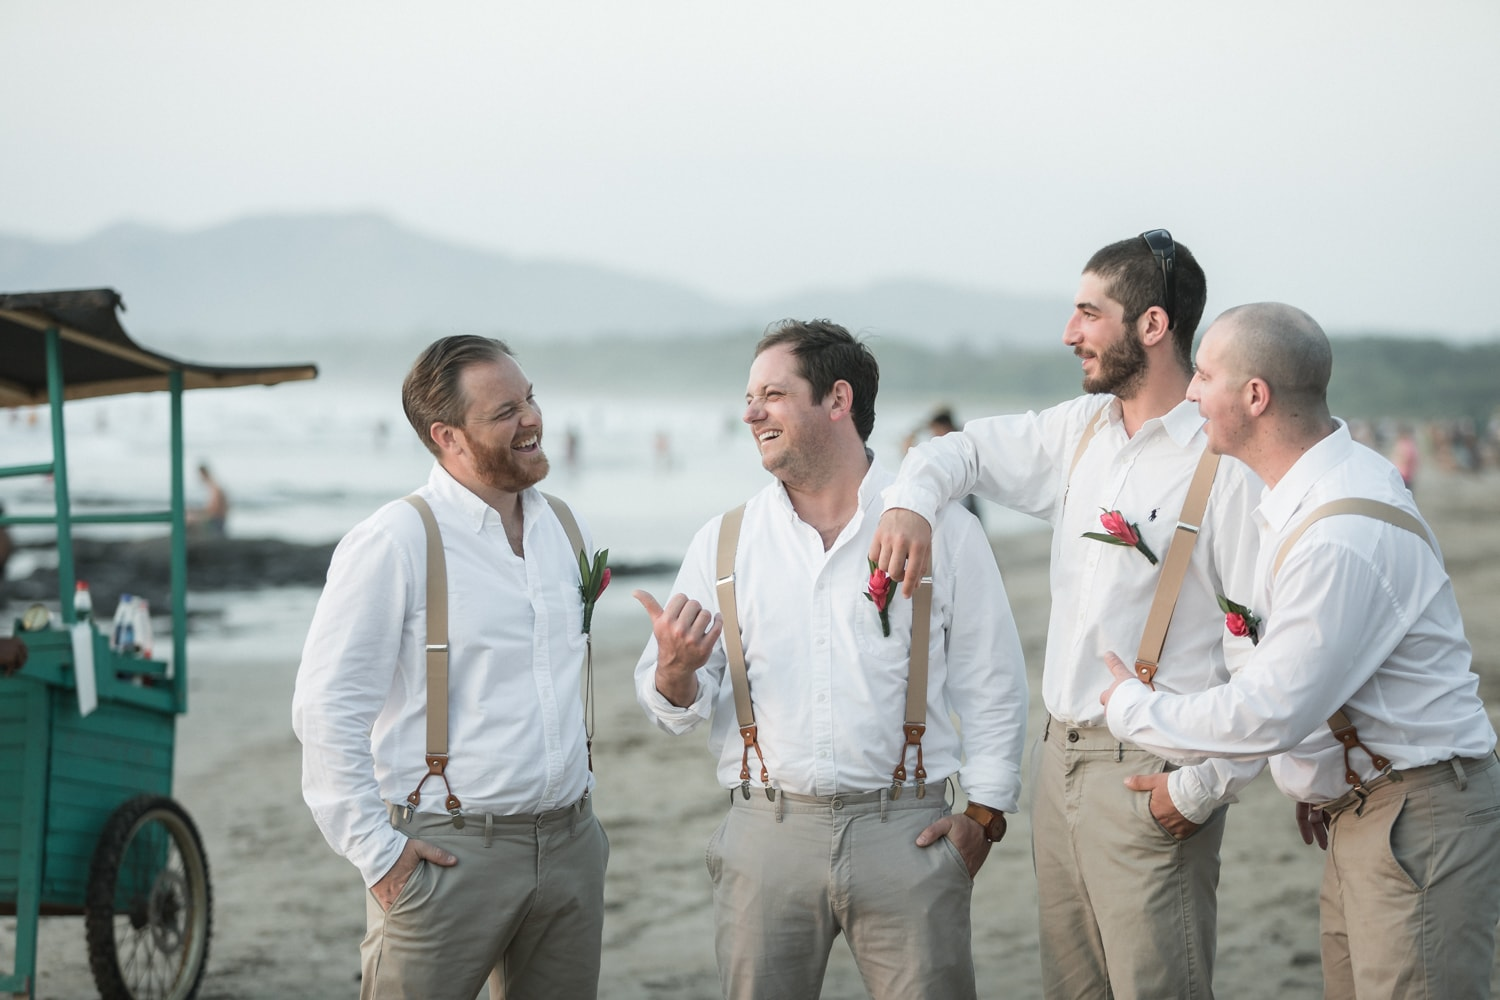 Groom and groomsmen on Tamarindo beach for wedding photos.